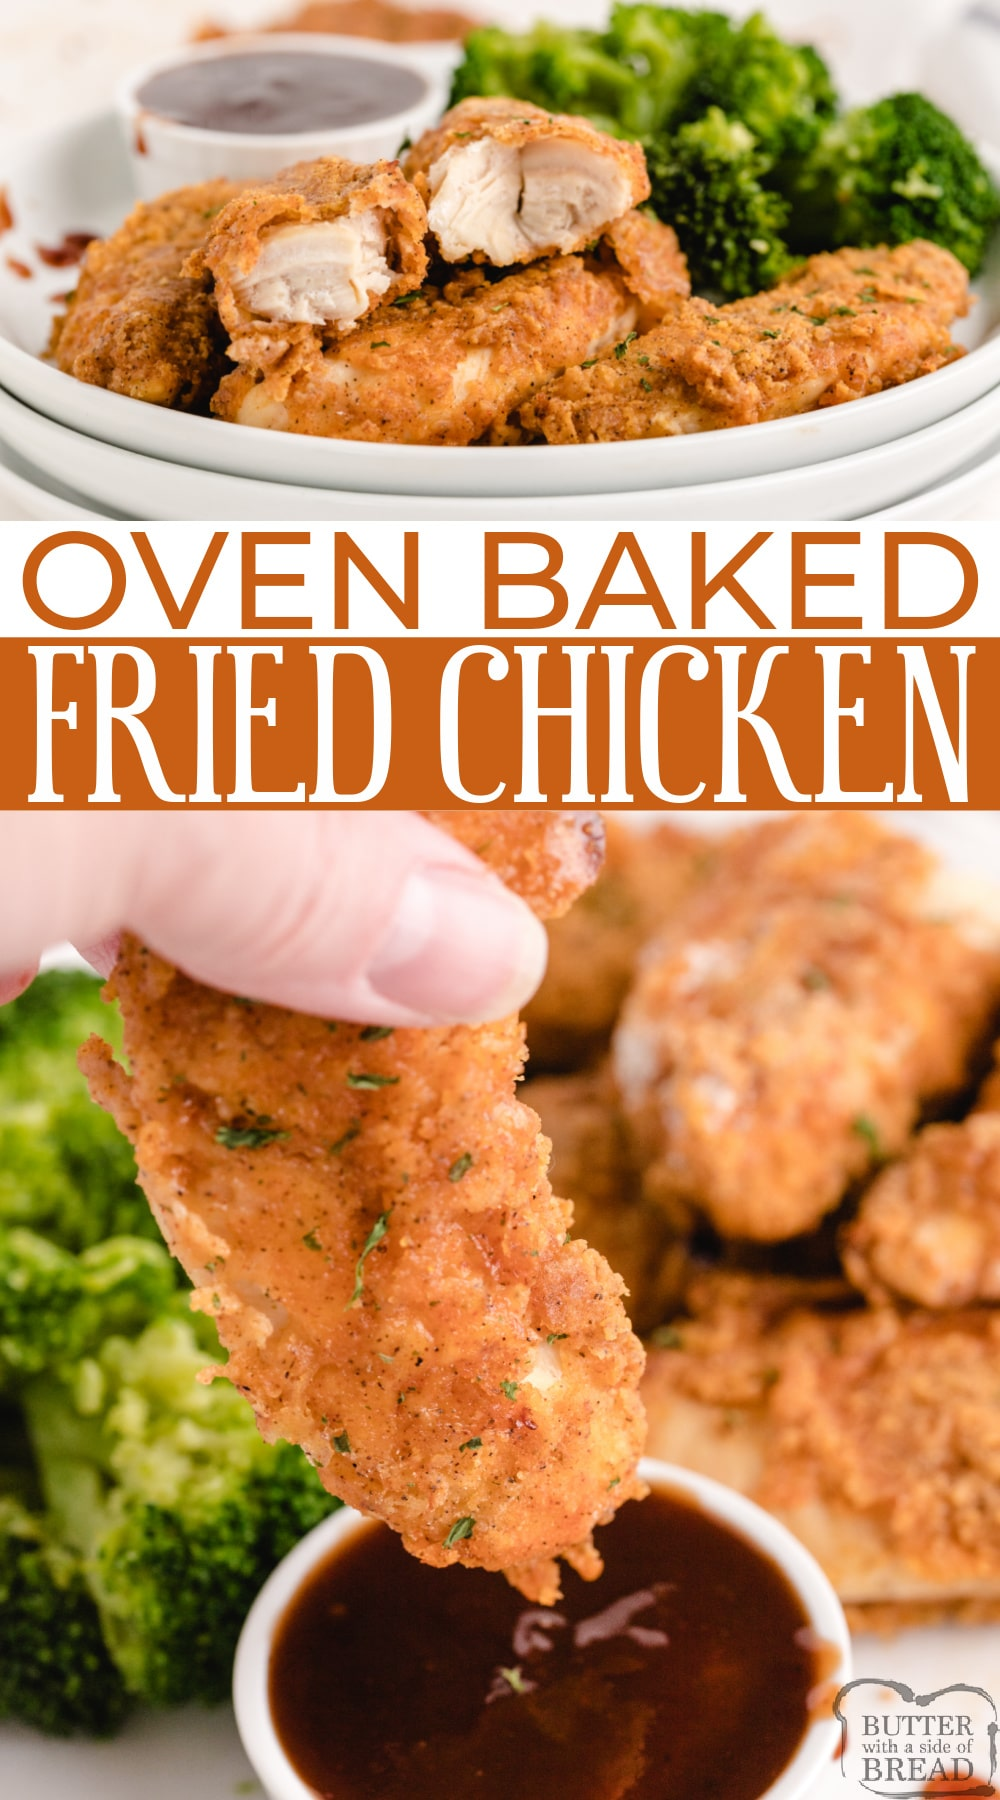 Oven Baked Fried Chicken made with chicken tenders hand breaded in a simple coating and then baked in the oven. Tastes just like fried chicken without frying in oil!